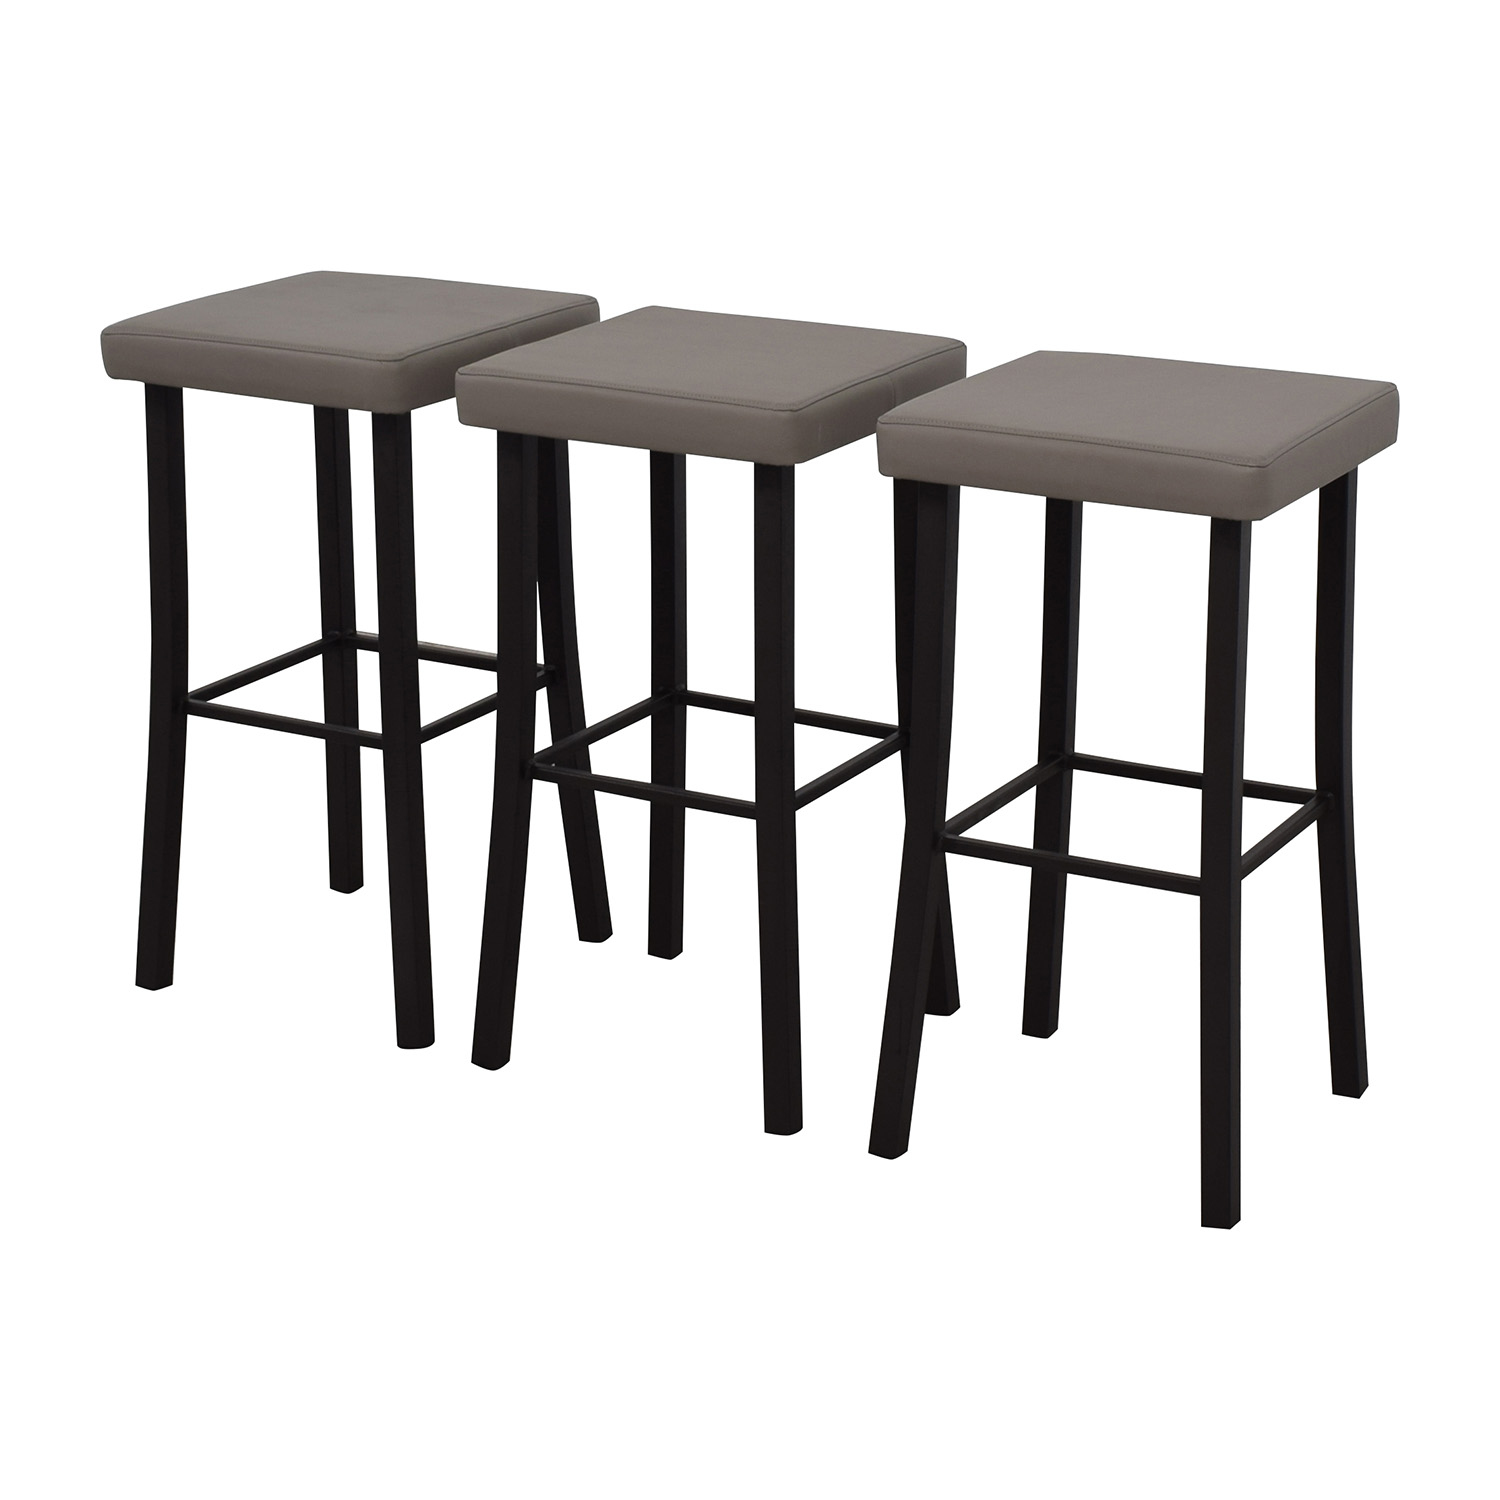 90% OFF - Amisco Amisco Ryan Grey Faux Leather Stool / Chairs